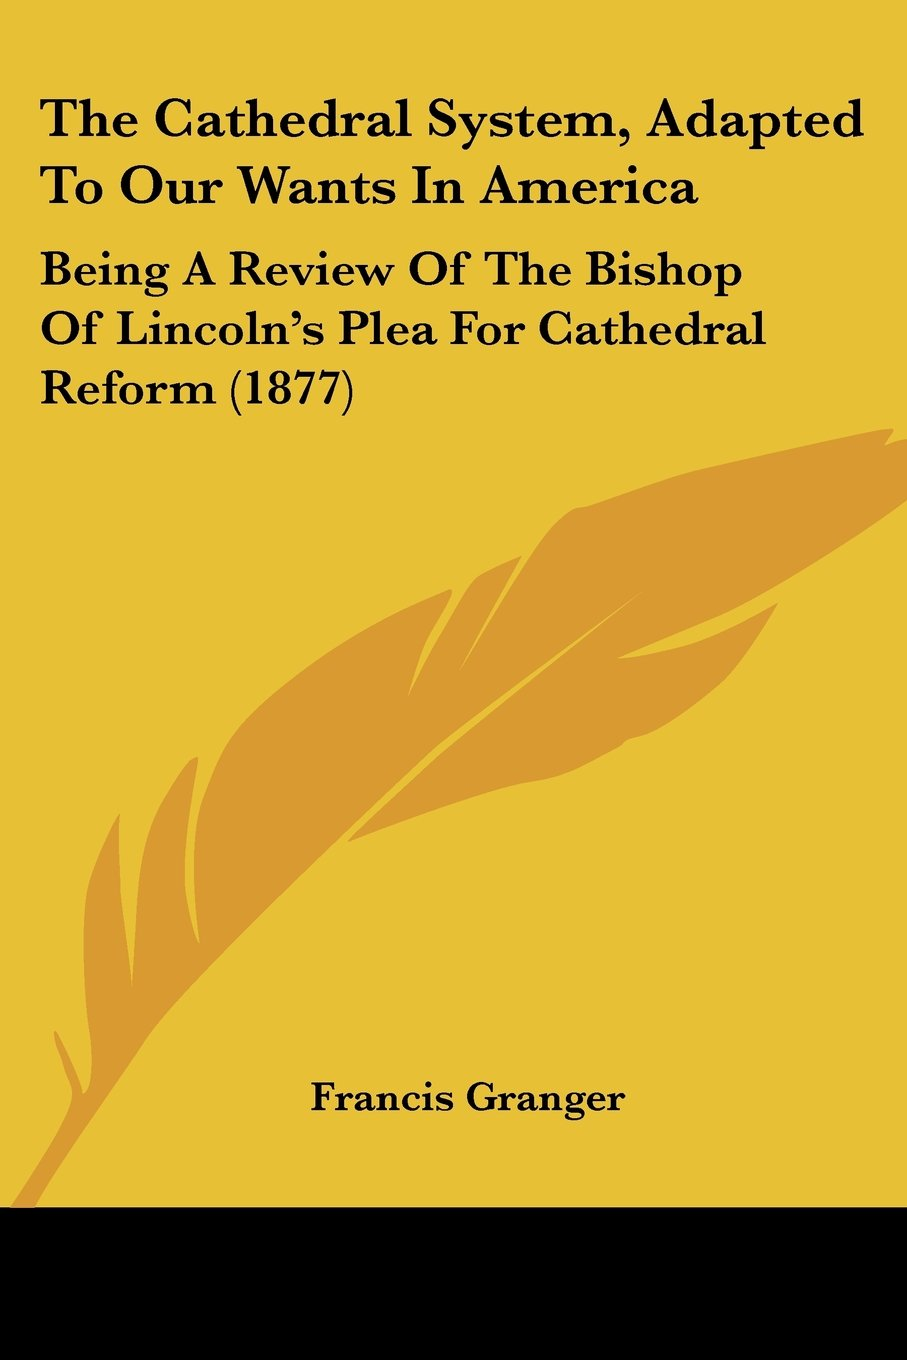 The Cathedral System, Adapted To Our Wants In America: Being A Review Of The Bishop Of Lincoln's Plea For Cathedral Reform (1877) PDF